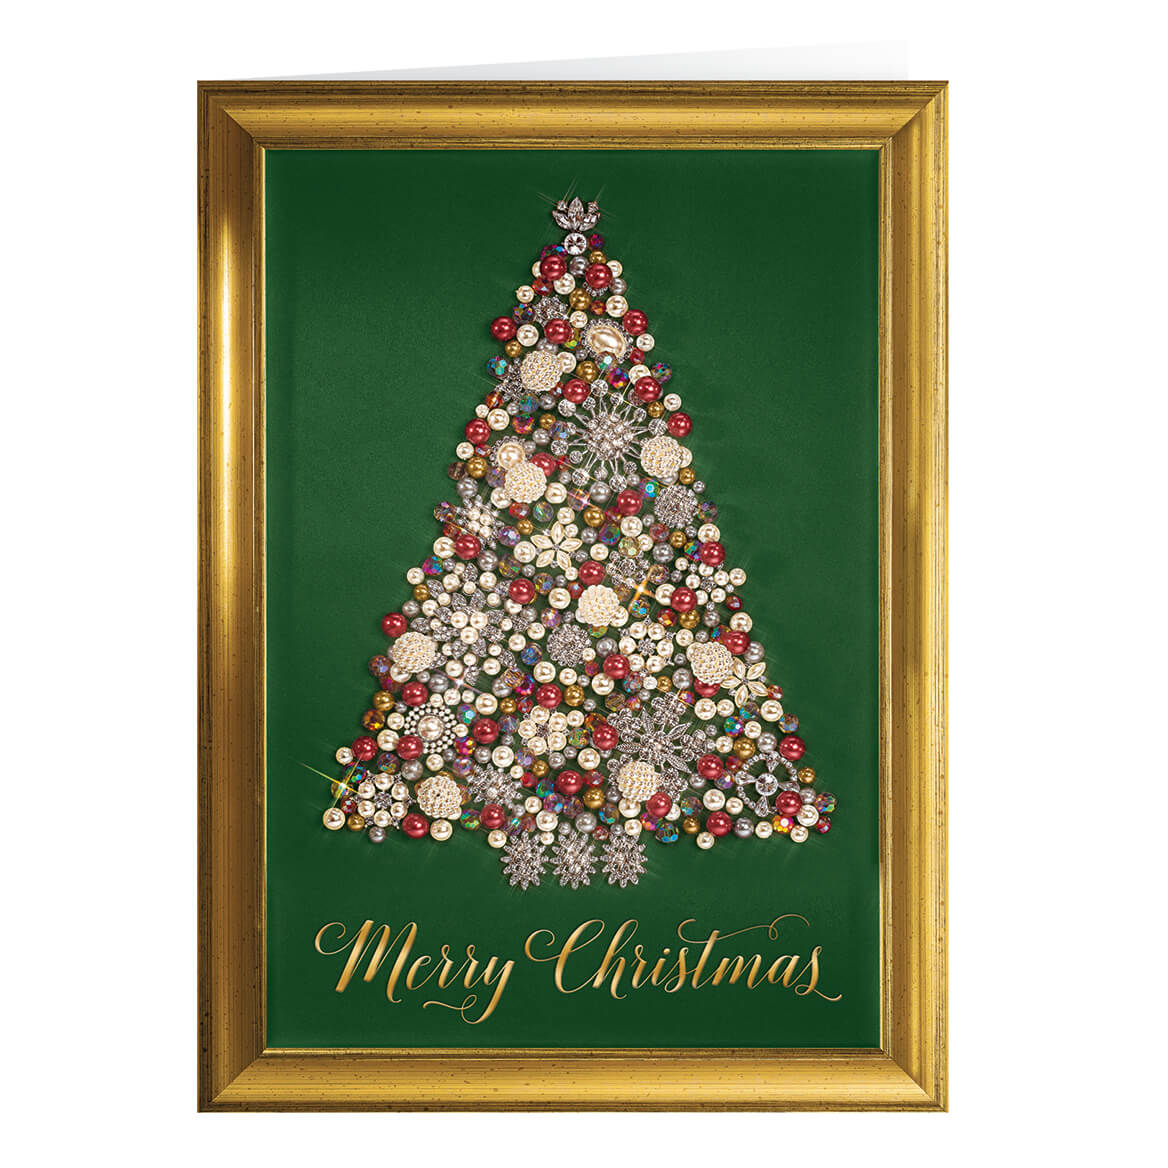 Glittering Tree- Personalized Christmas Cards - Miles Kimball